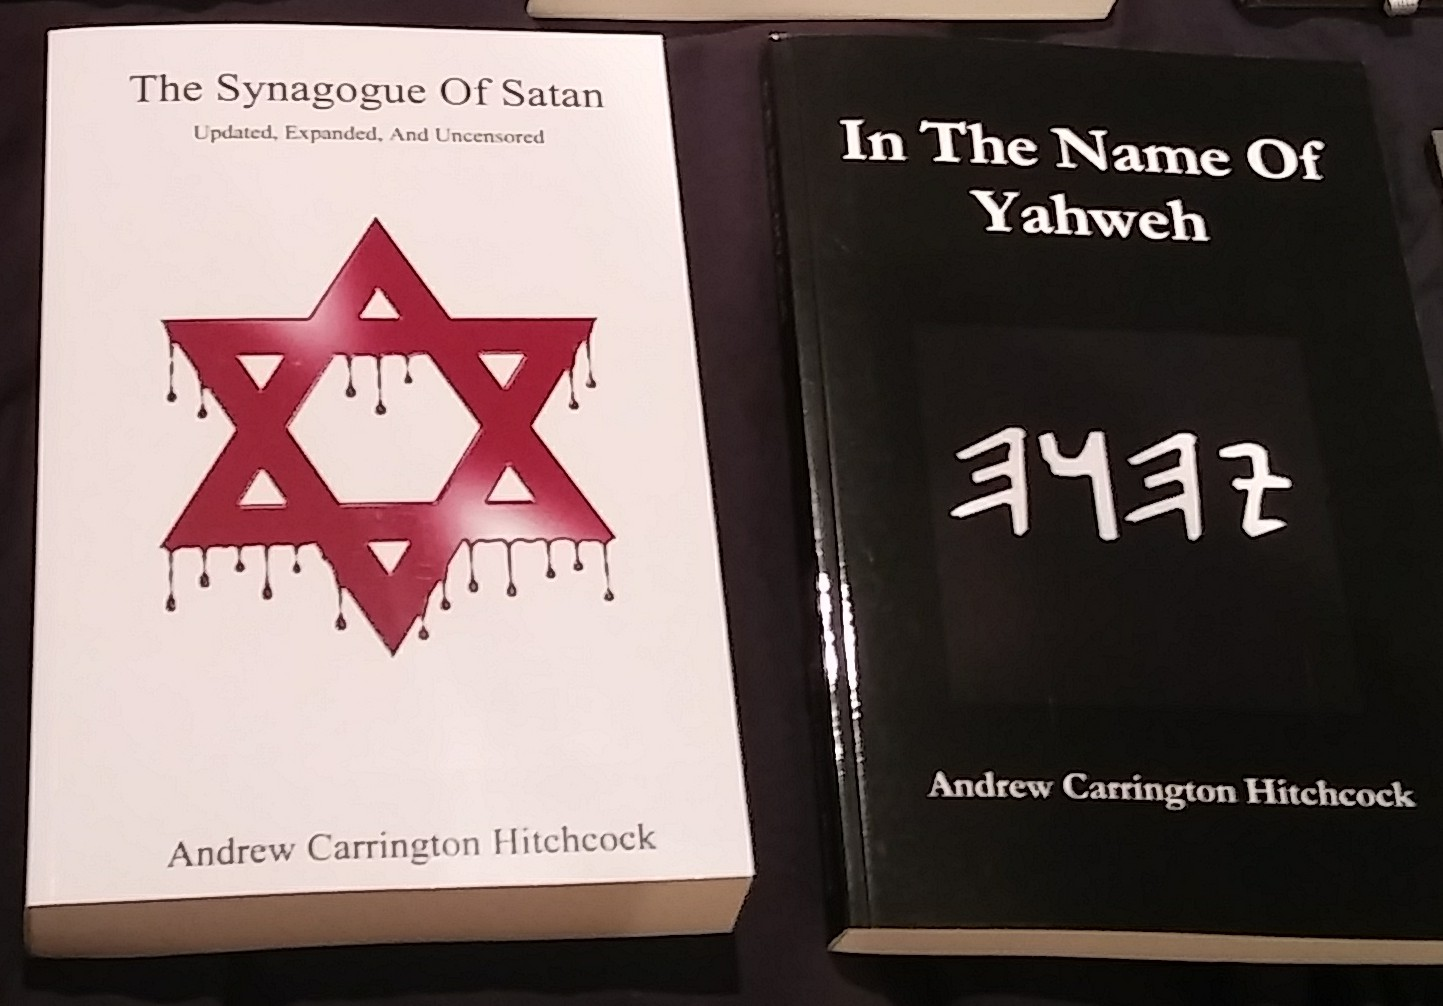 BANNED AND UNAVAILABLE AS OF TODAY: The Synagogue Of Satan – Updated, Expanded, And Uncensored & In The Name Of Yahweh